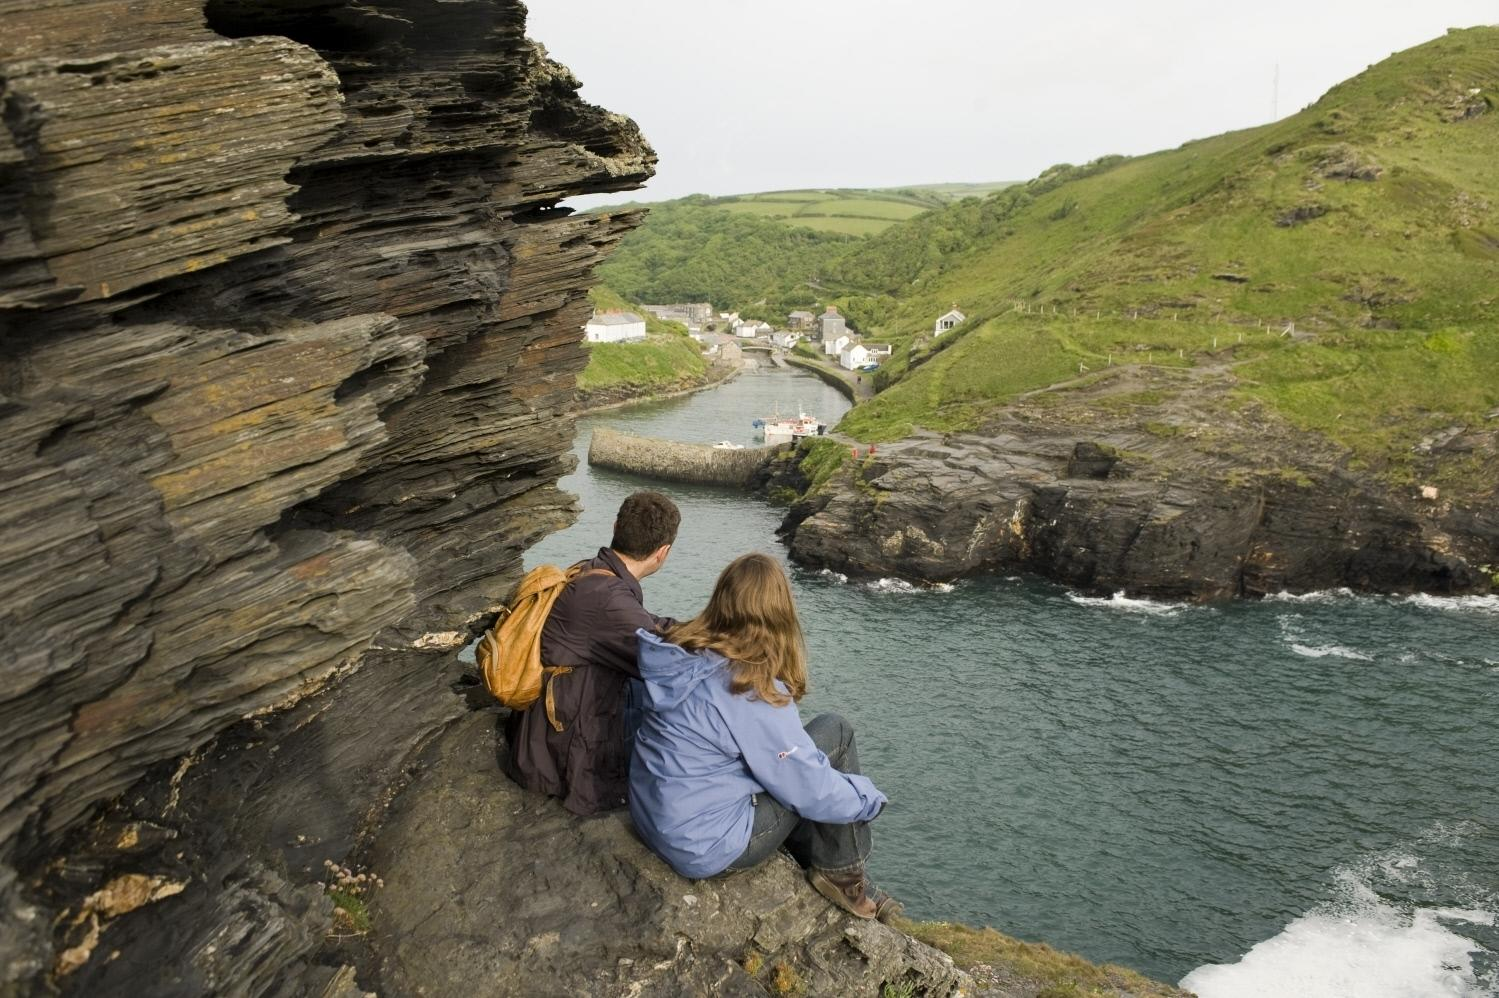 "Beginning in the picturesque seaside village of Boscastle, this lovely walk explores the cliffs above Boscastle's medieval harbour before heading inland across the <a href=""https://www.nationaltrust.org.uk/boscastle/trails/boscastle-and-the-valency-valley-walk"" target=""_blank"">Valency Valley</a> and through peaceful woodland, alongside the meandering Valency River. <strong>Best for: Varied landscapes.</strong>"